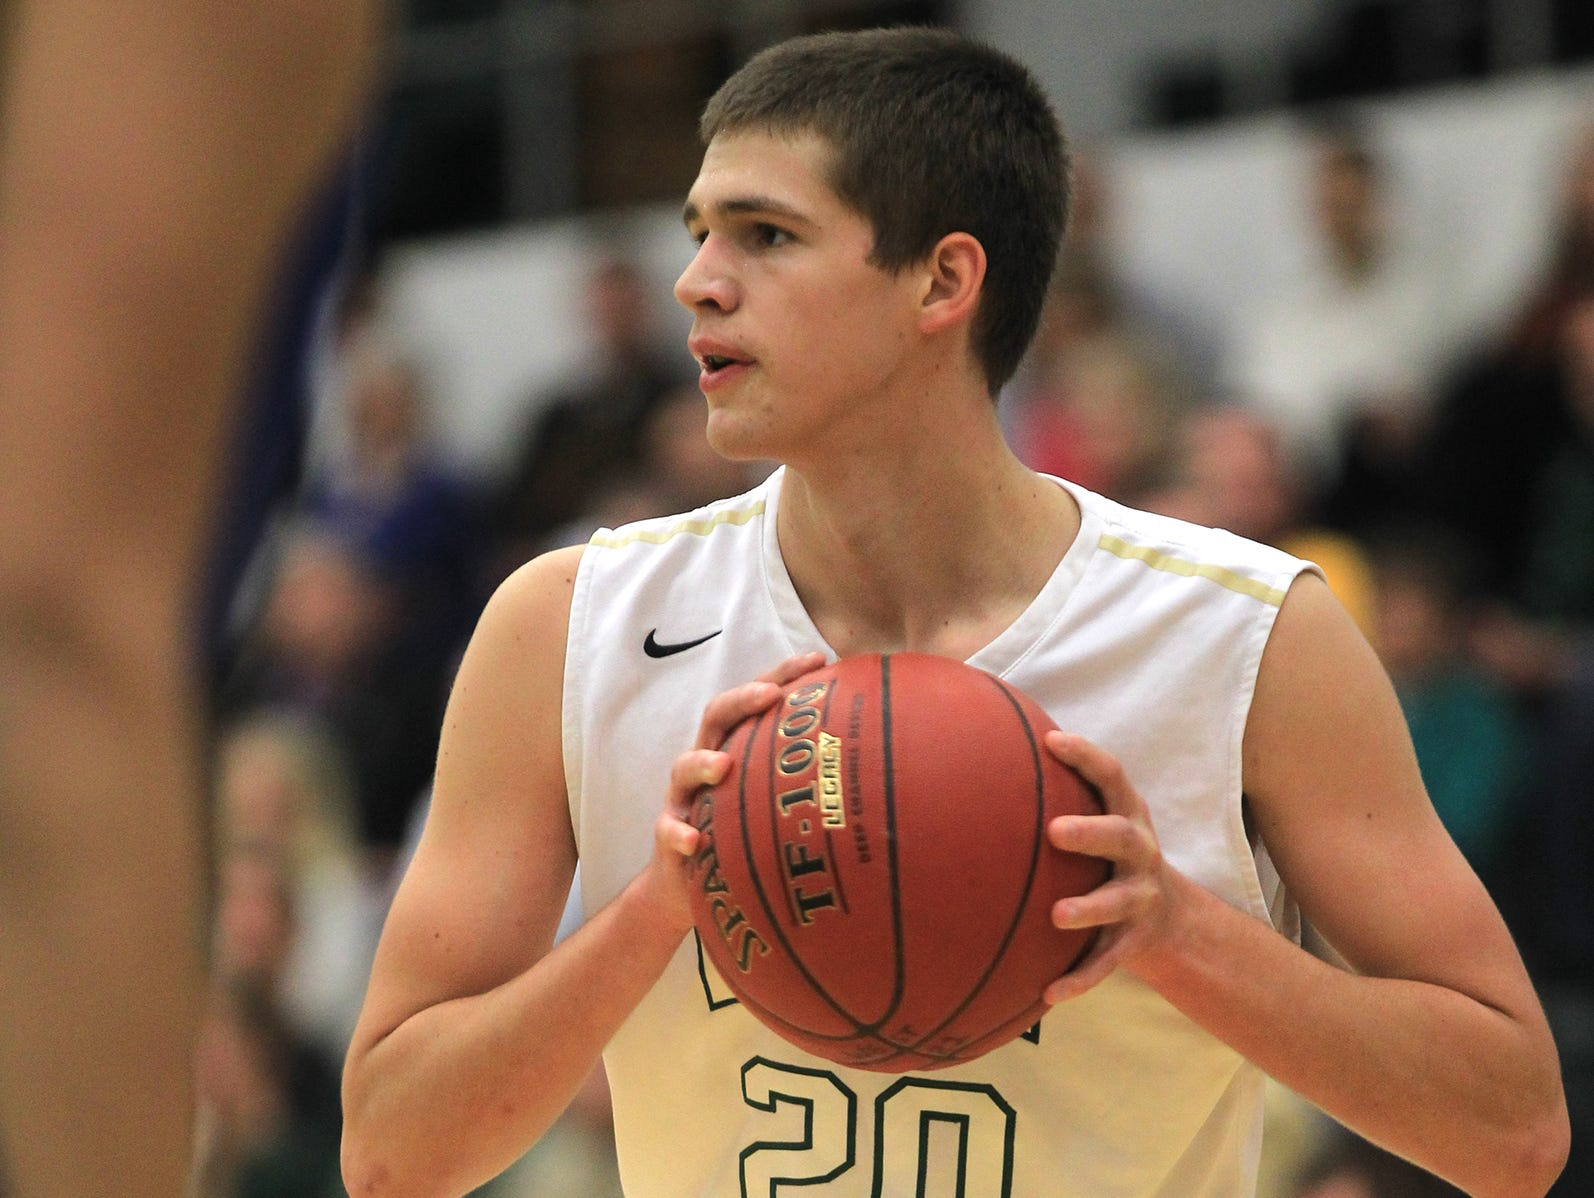 Northern Iowa is getting another Lohaus. Iowa City West junior Tanner Lohaus verbally committed to join coach Ben Jacobson's basketball team on Tuesday after a visit to Cedar Falls.